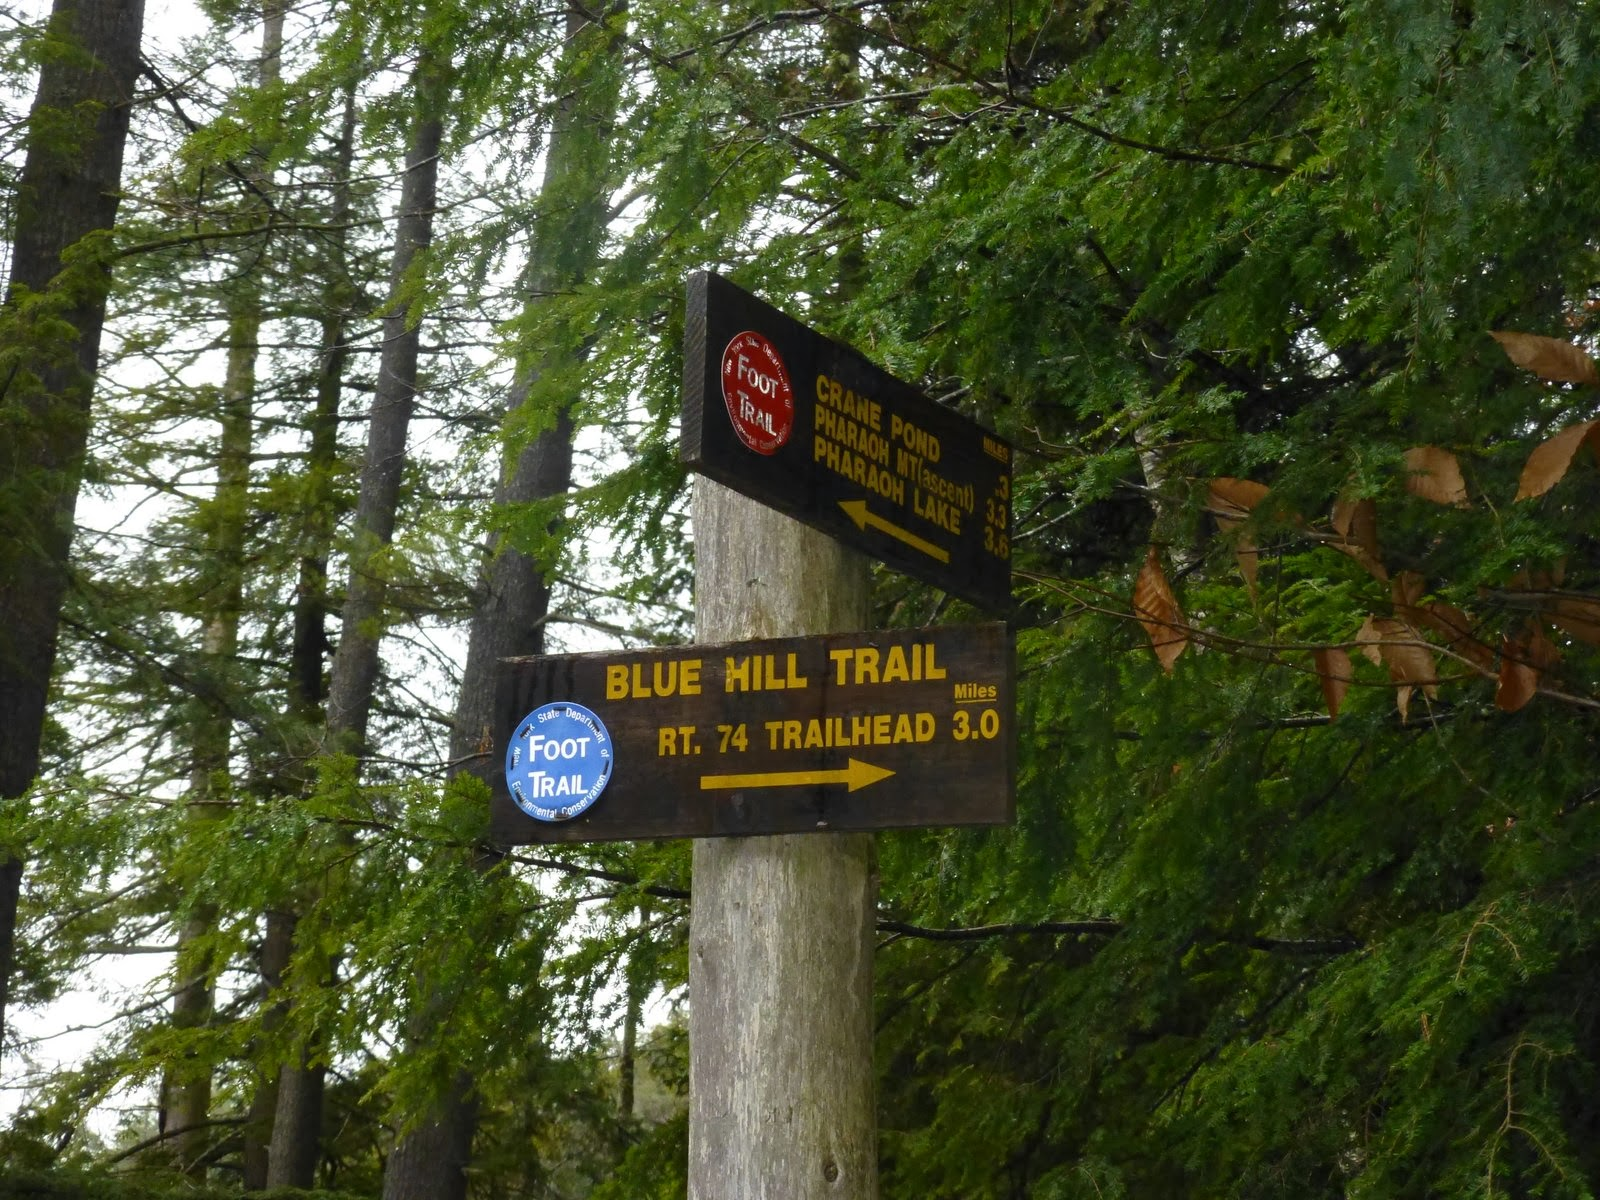 off on adventure long swing trail to crane pond pharaoh lakes